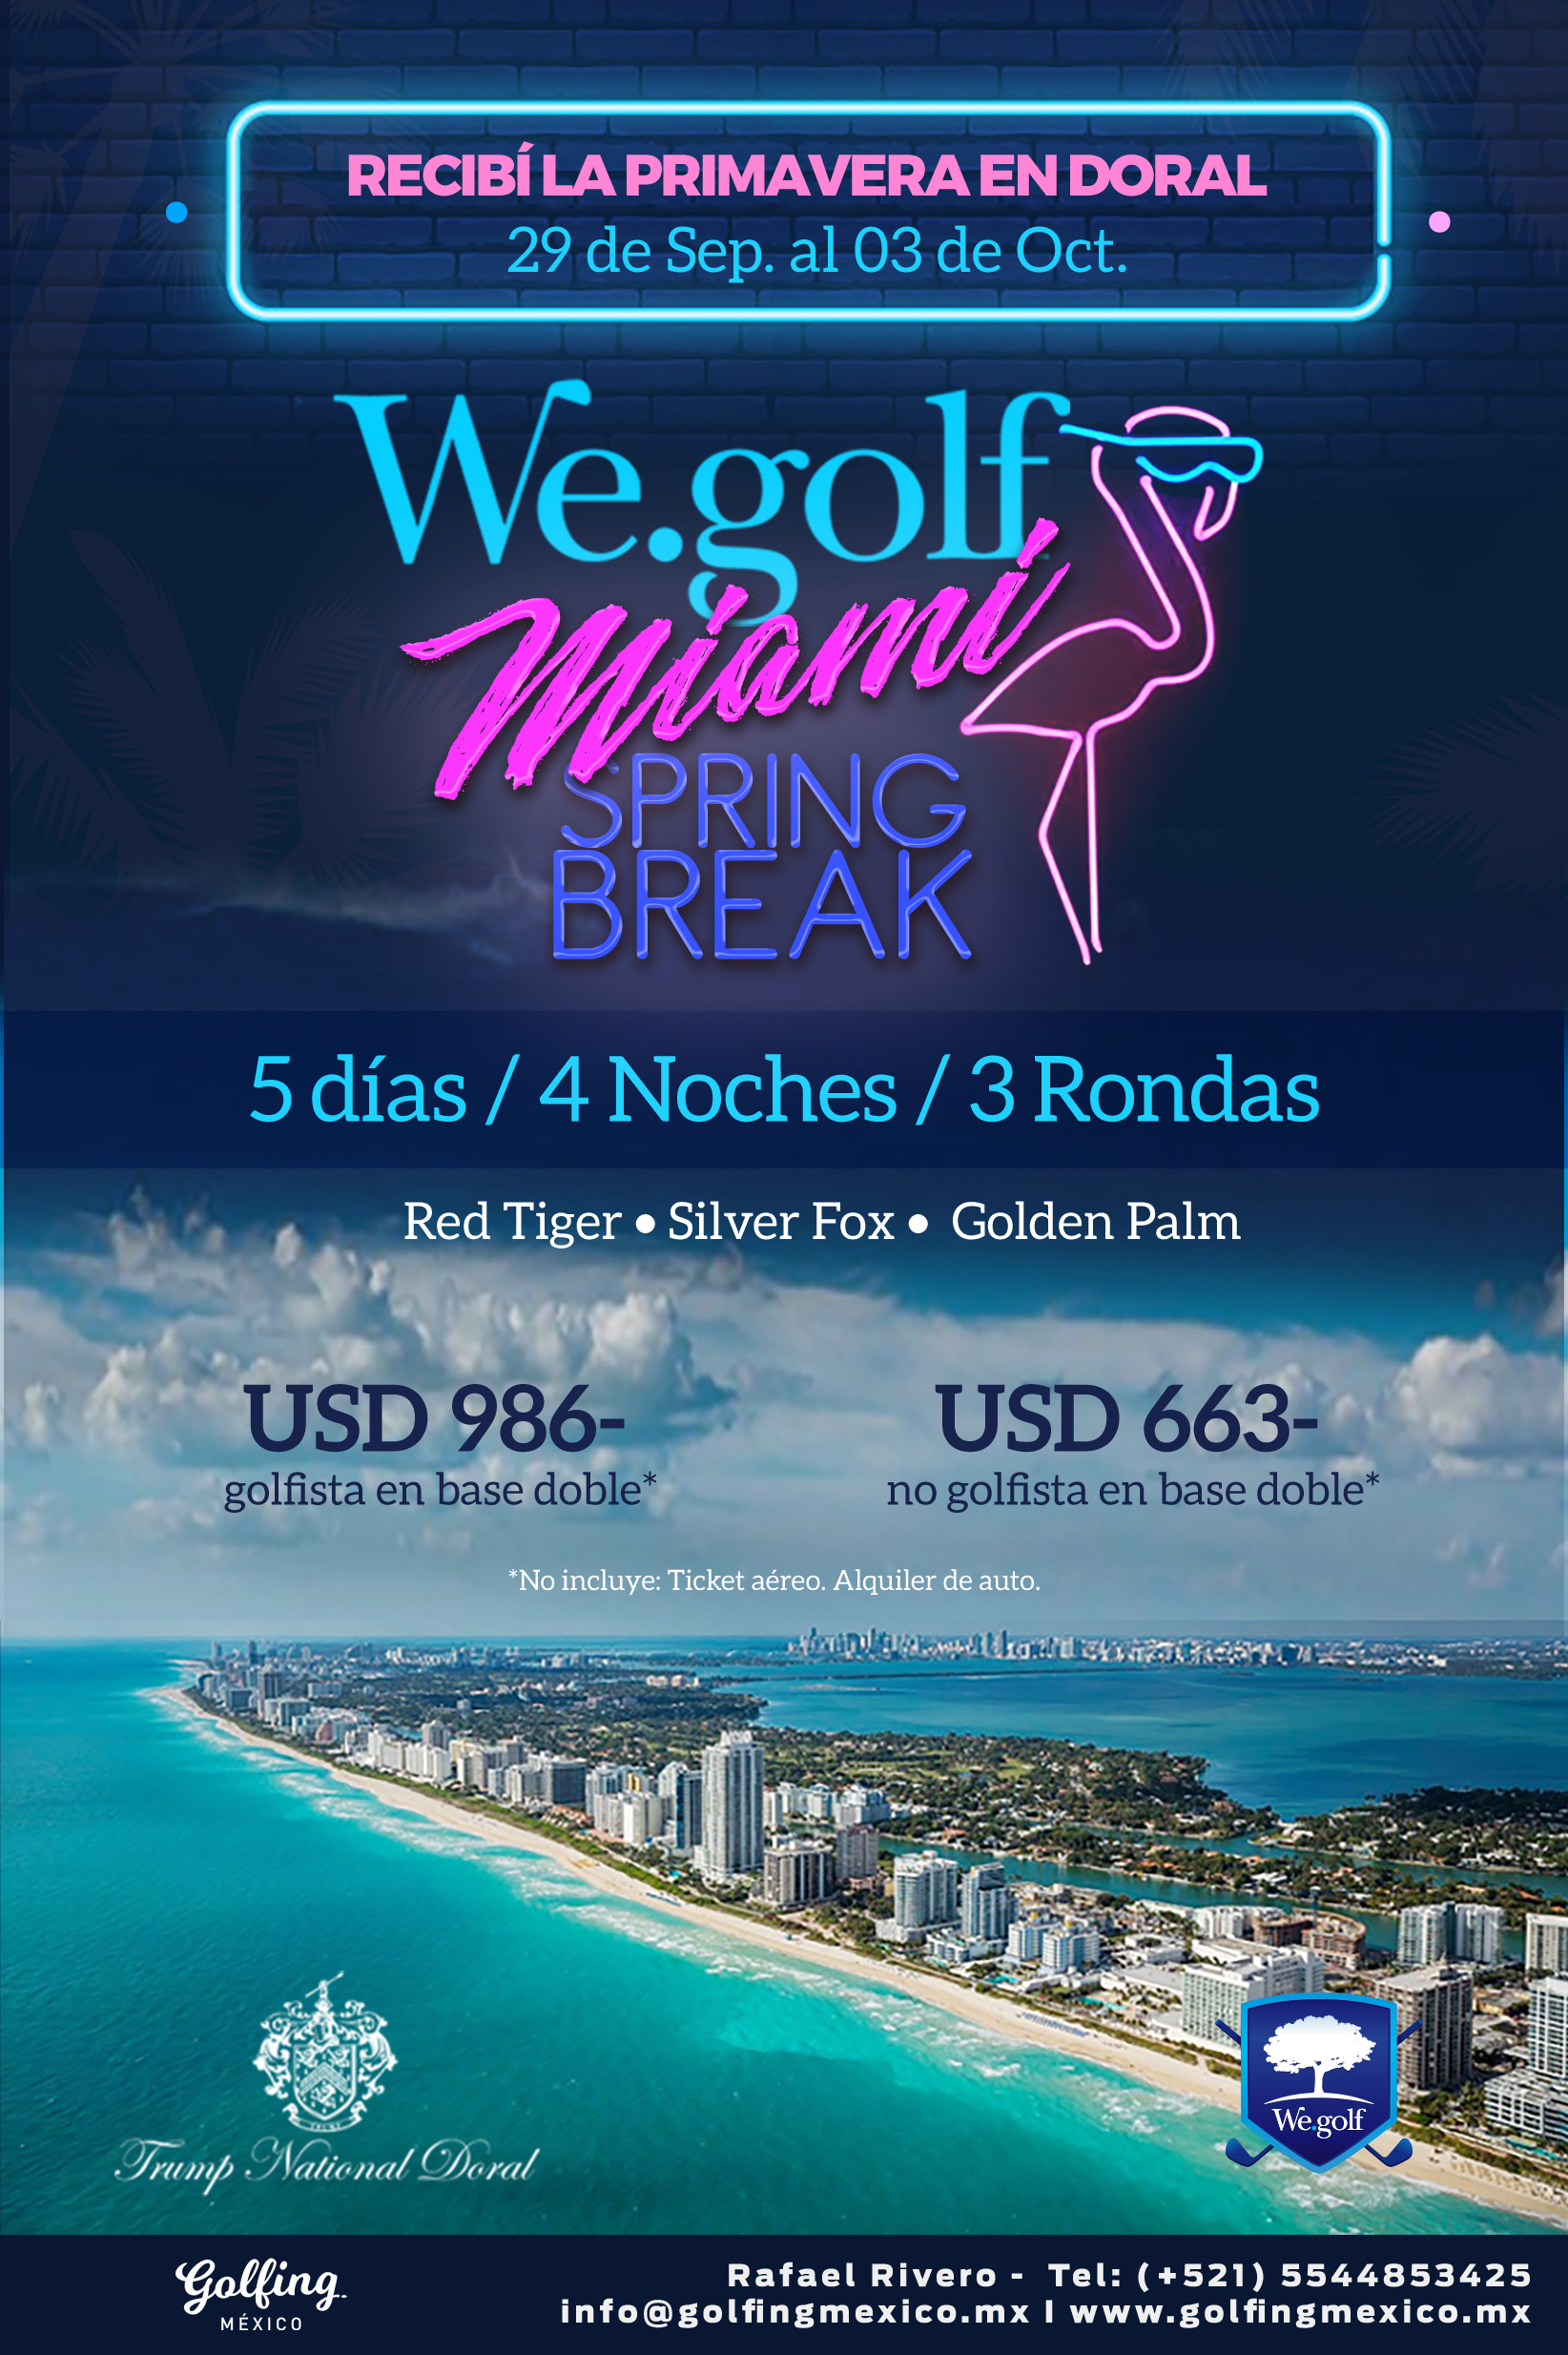 Flyer_MiamiSpringBreak_GolfingMexico.jpg